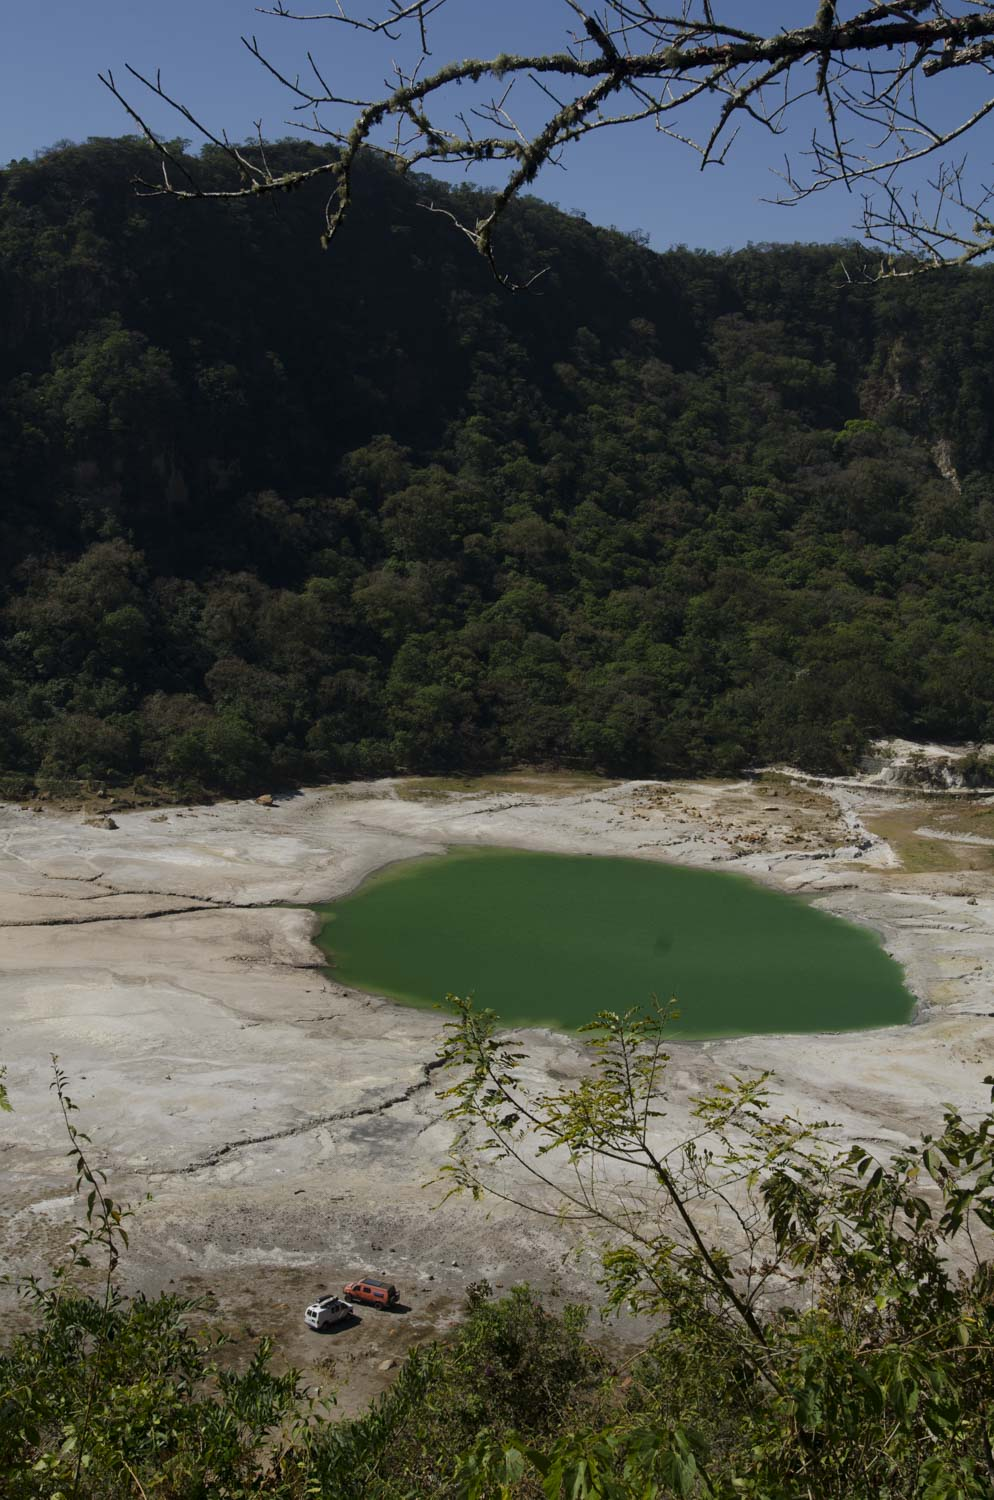 Camping in the crater of a dormant volcano